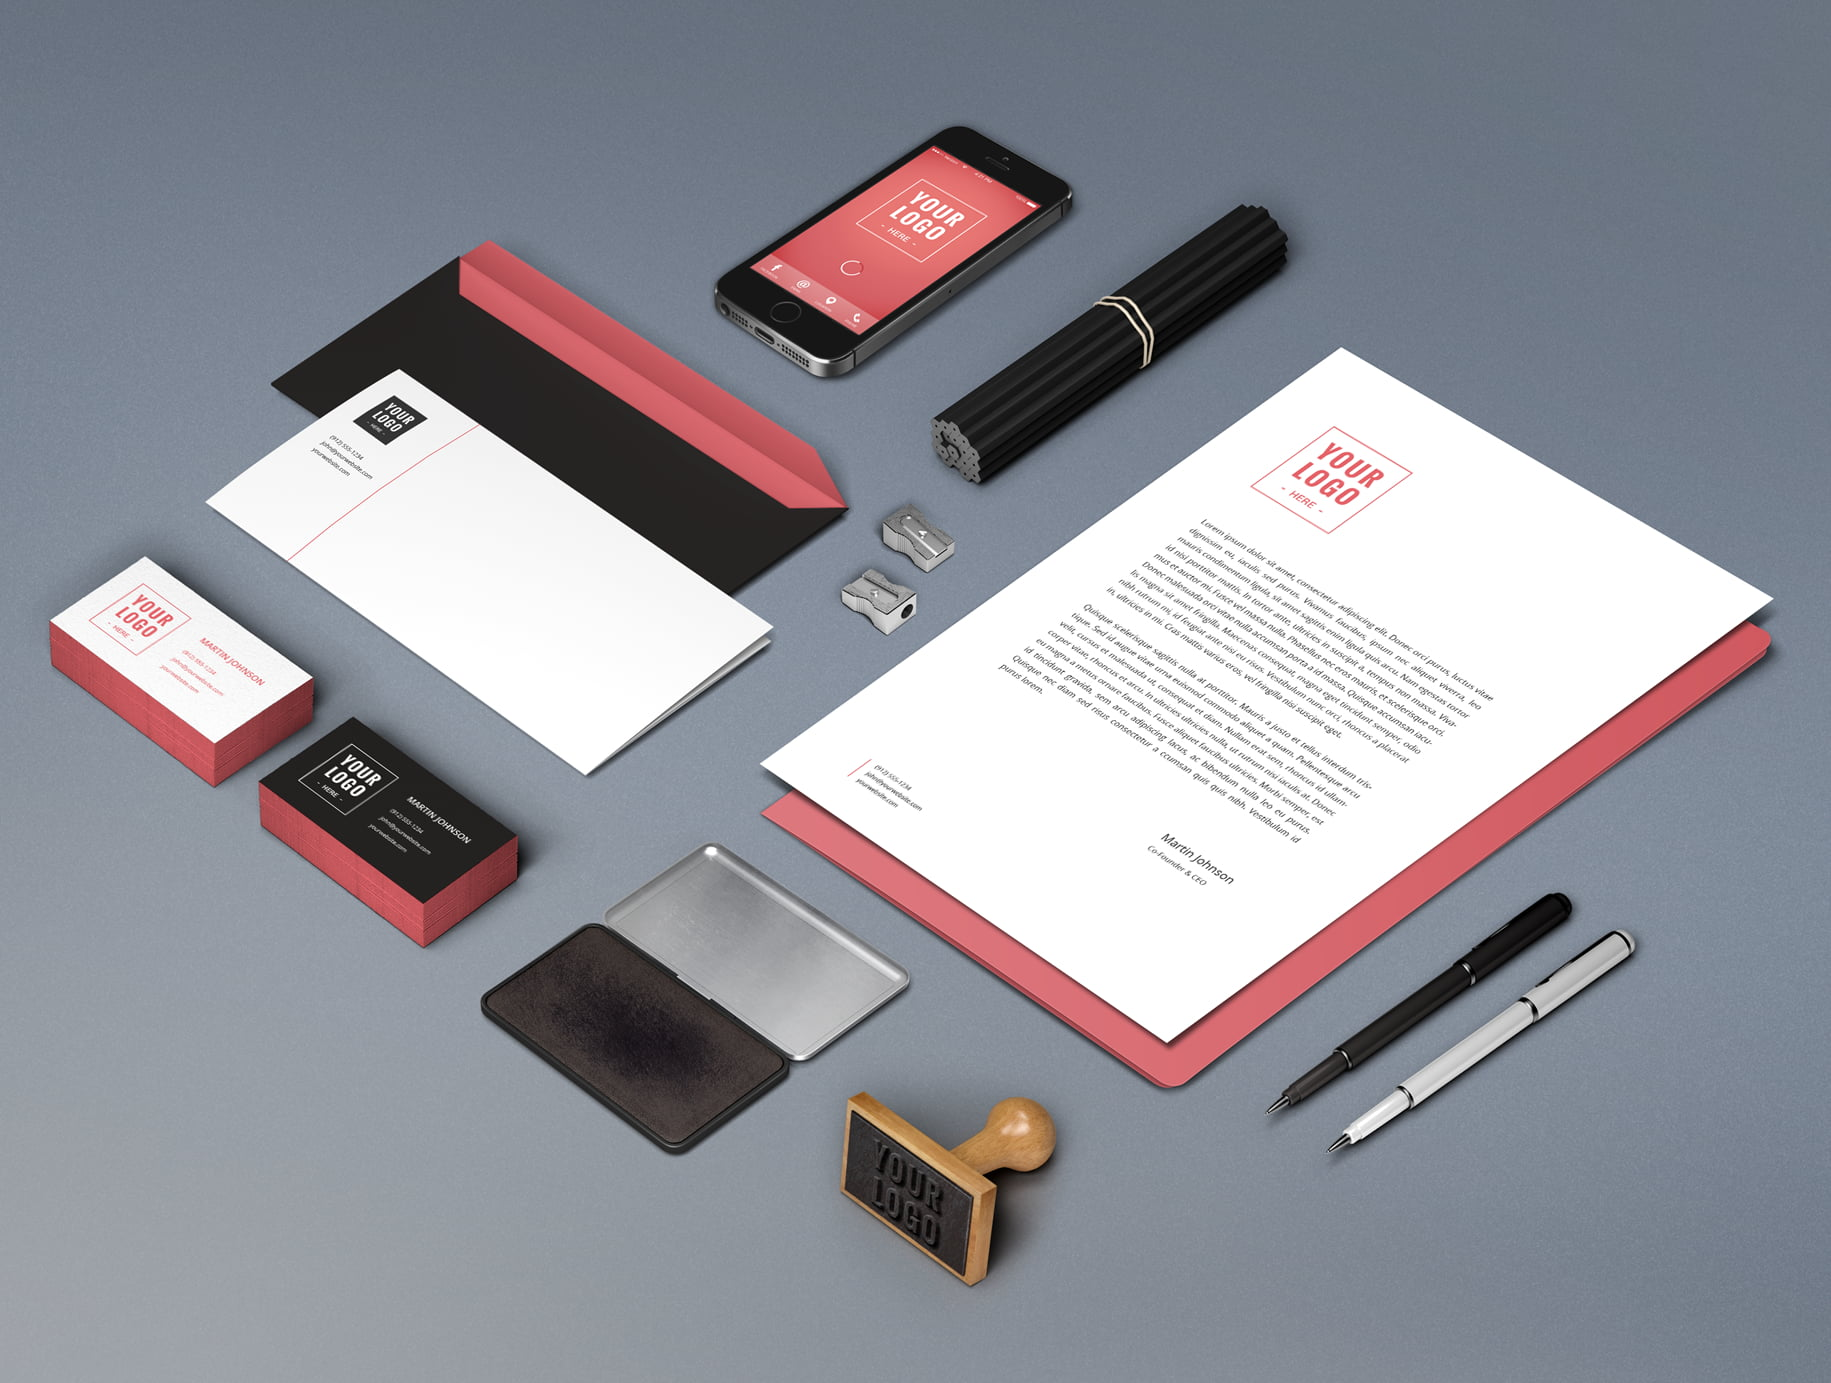 Tight selection of relative branded stationery laid out